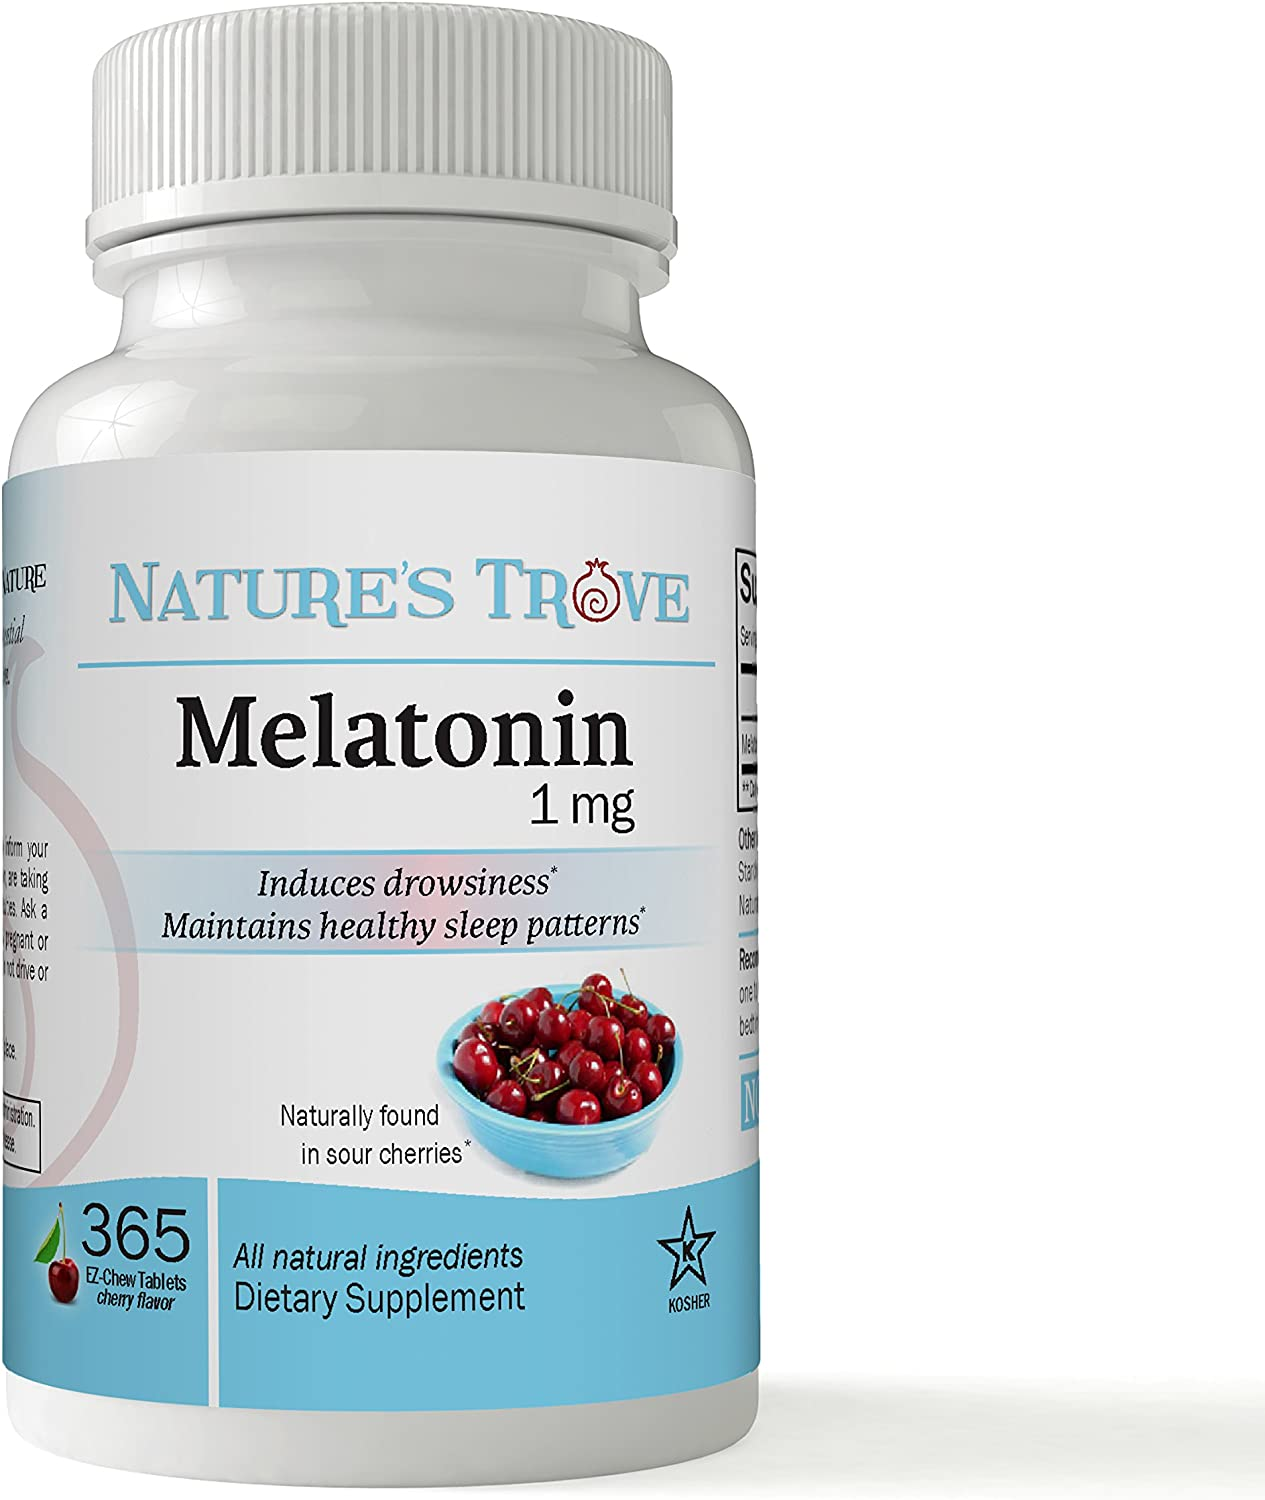 Melatonin 1mg by Nature's Trove - 365 EZ-Chew Tablets Cherry Flavor